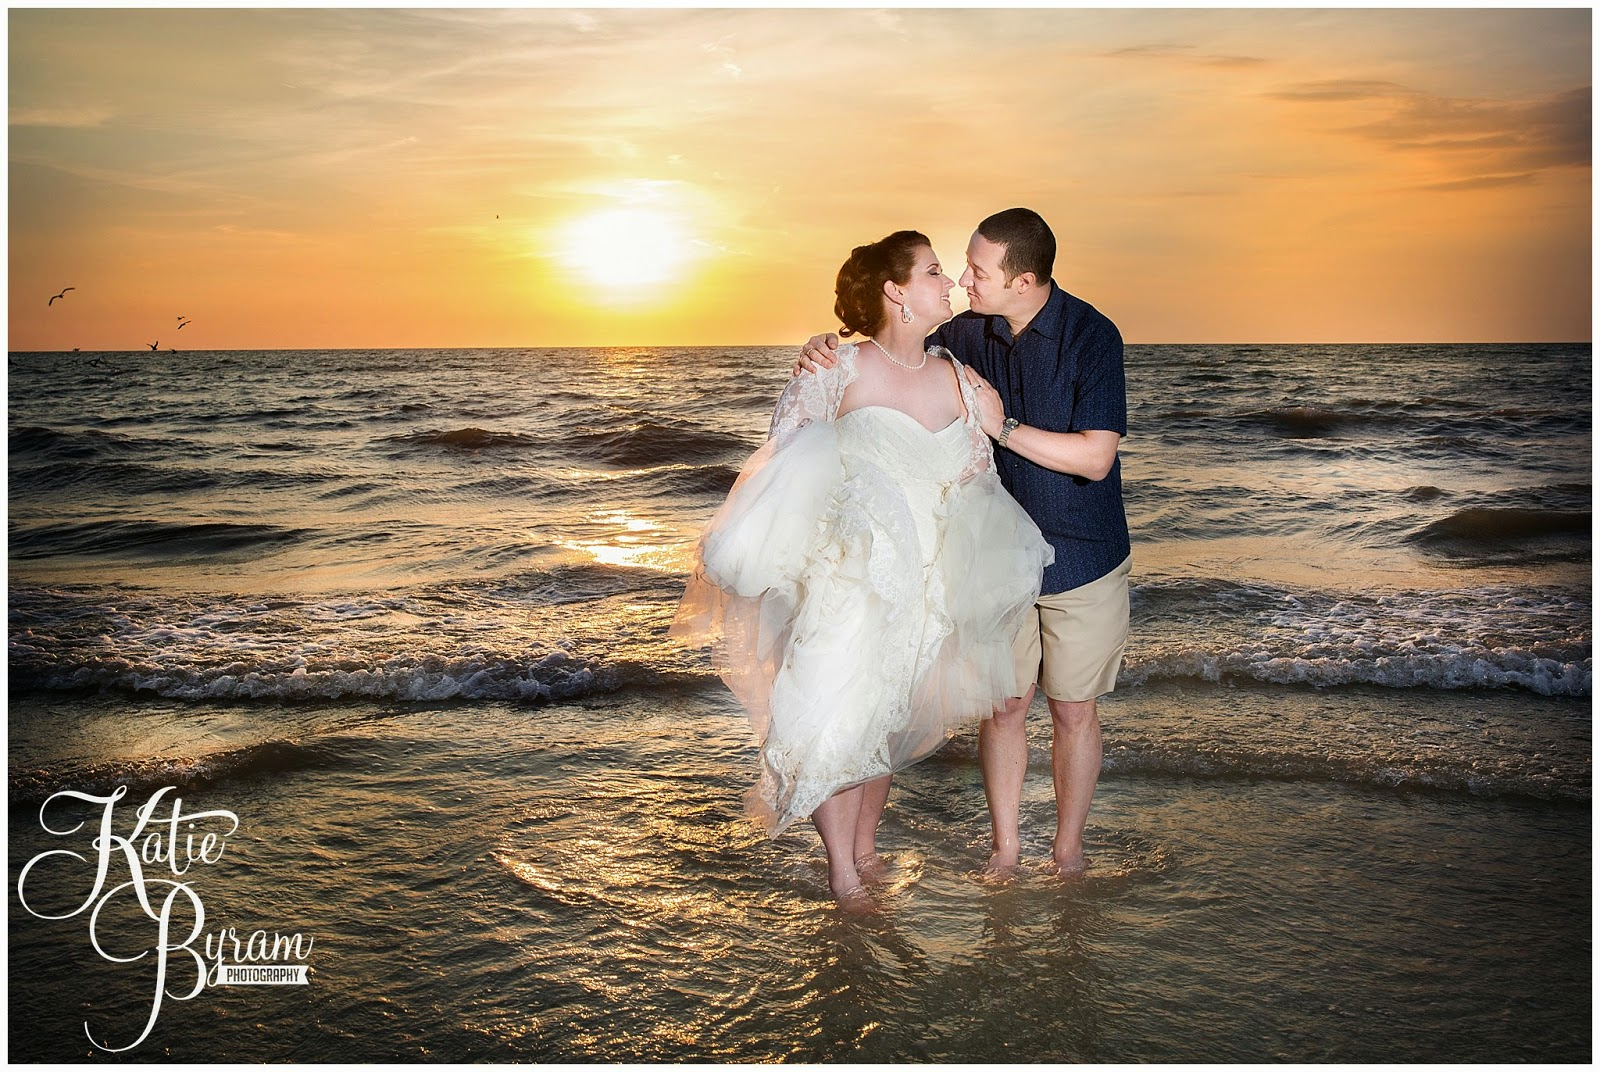 bride and groom in the sea, nautical wedding, beach wedding theme, destination wedding, clearwater beach wedding, hilton clearwater beach wedding, katie byram photography, florida wedding